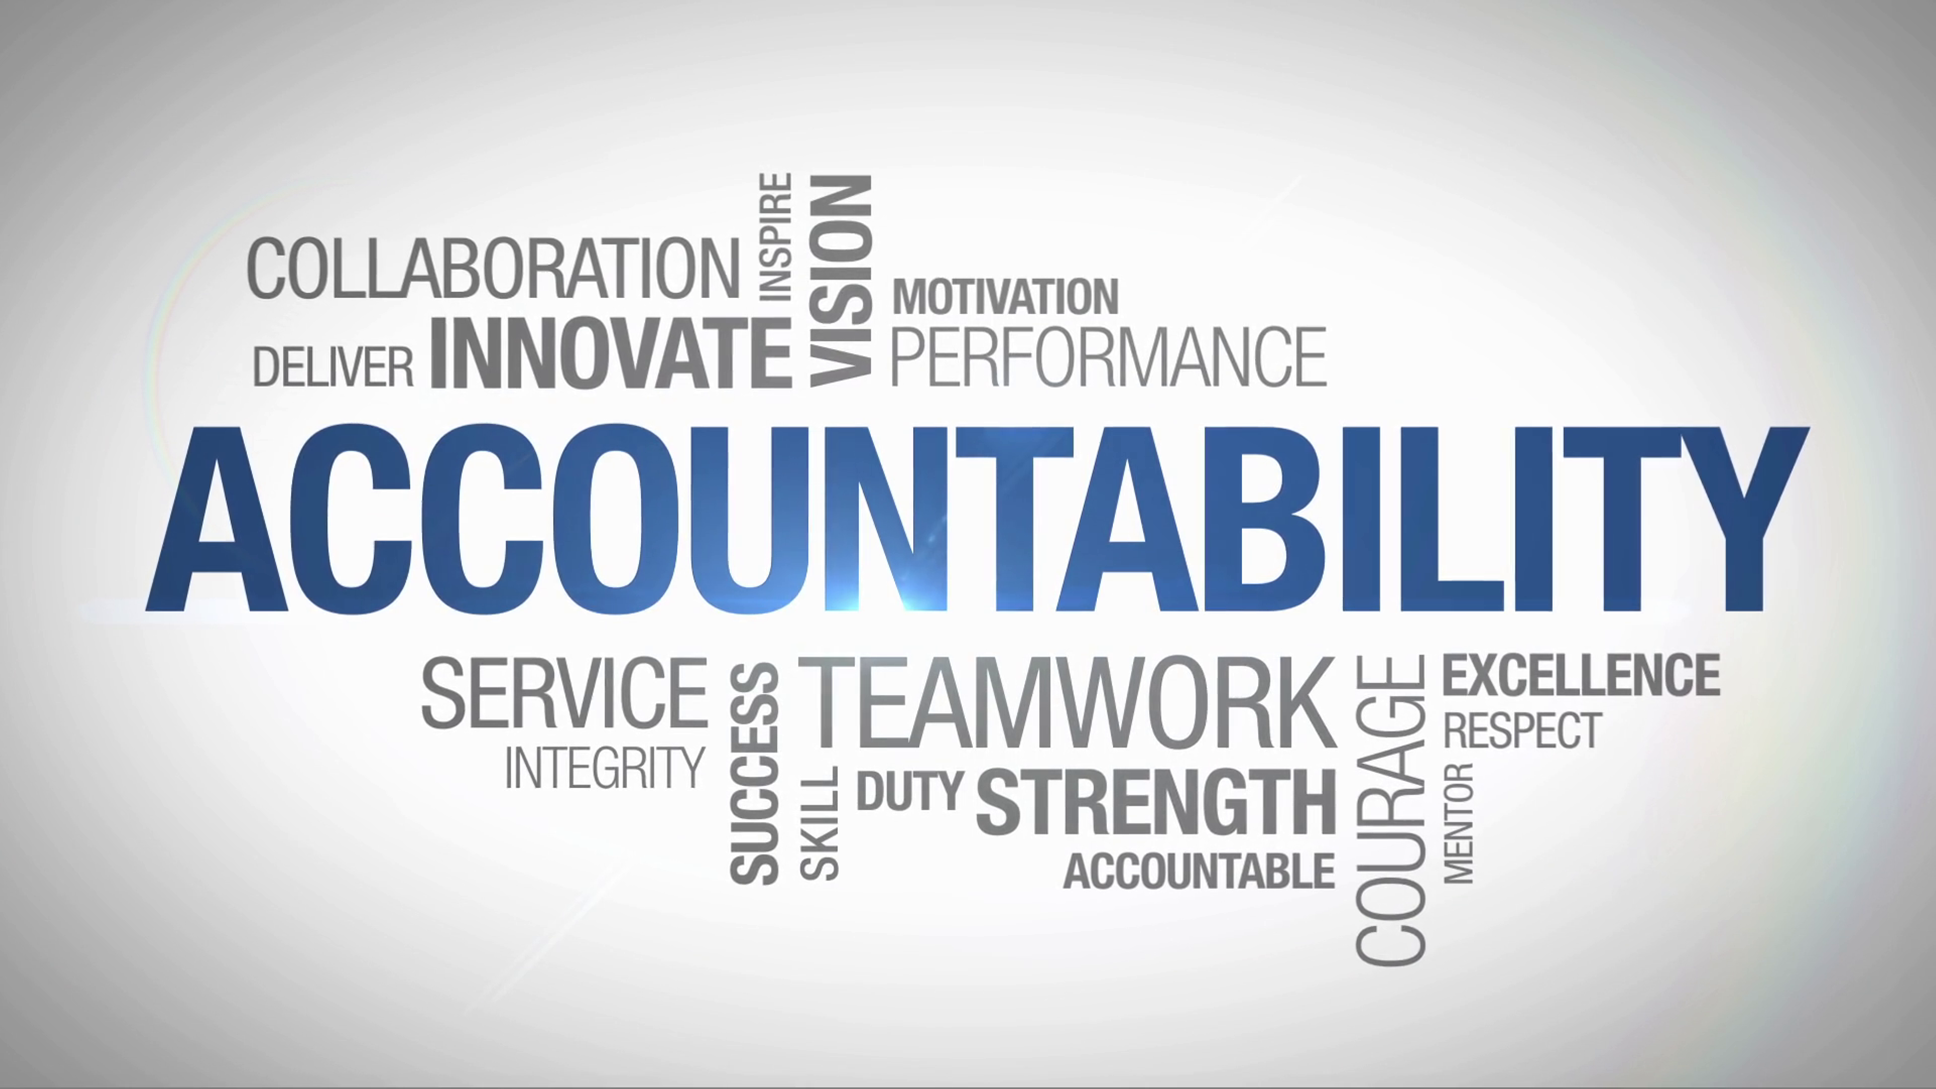 March 18, 10-11:30 am: Accountability in Action